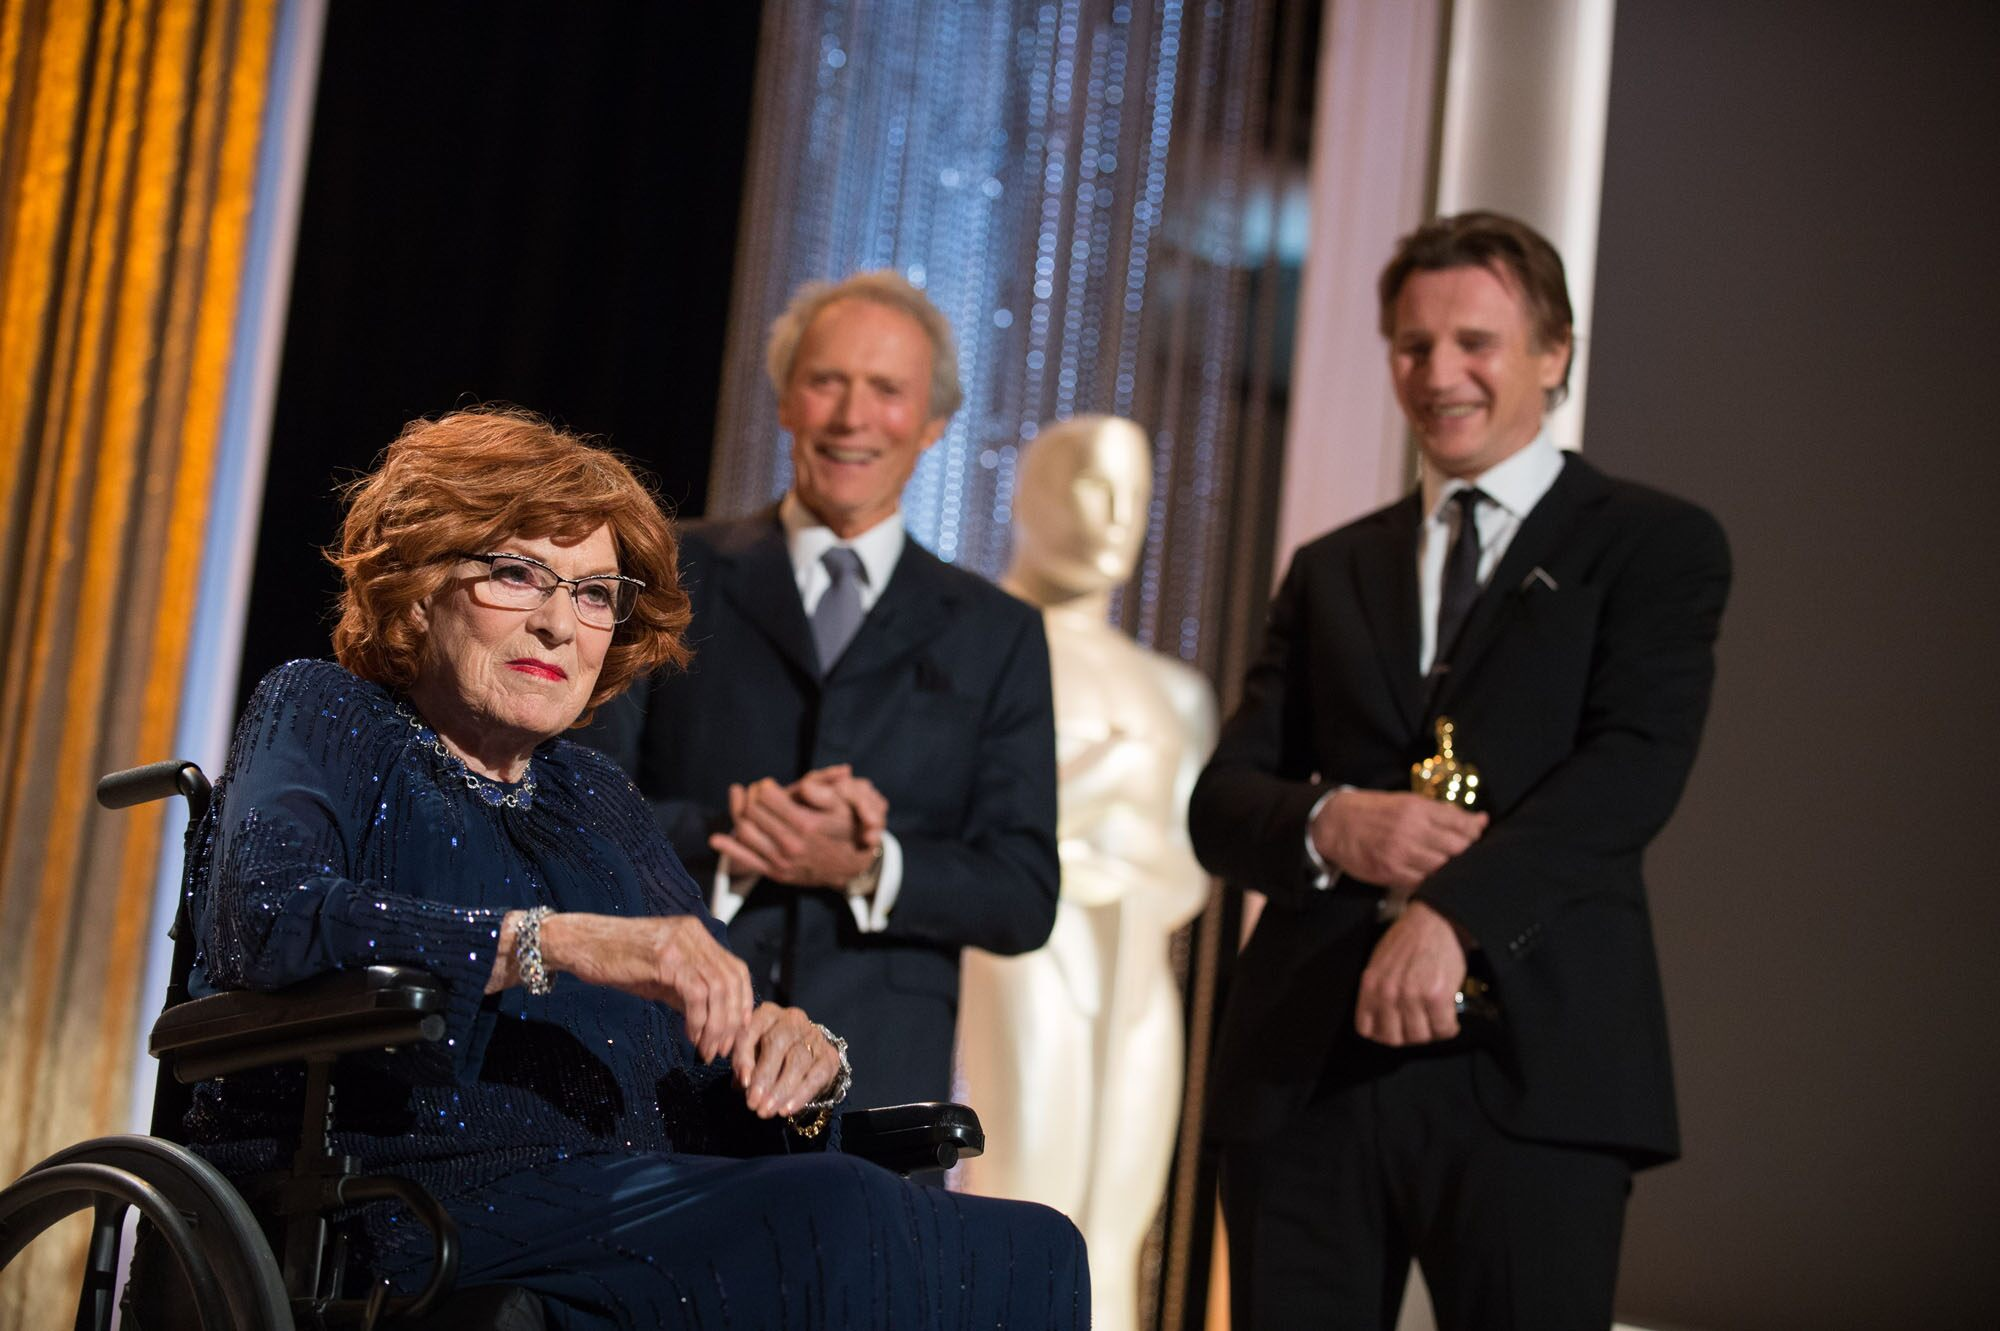 Oscar®-winning actor/director Clint Eastwood (center) and actor Liam Neeson (right) present to Honorary Award to recipient Maureen O'Hara during the 2014 Governors Awards